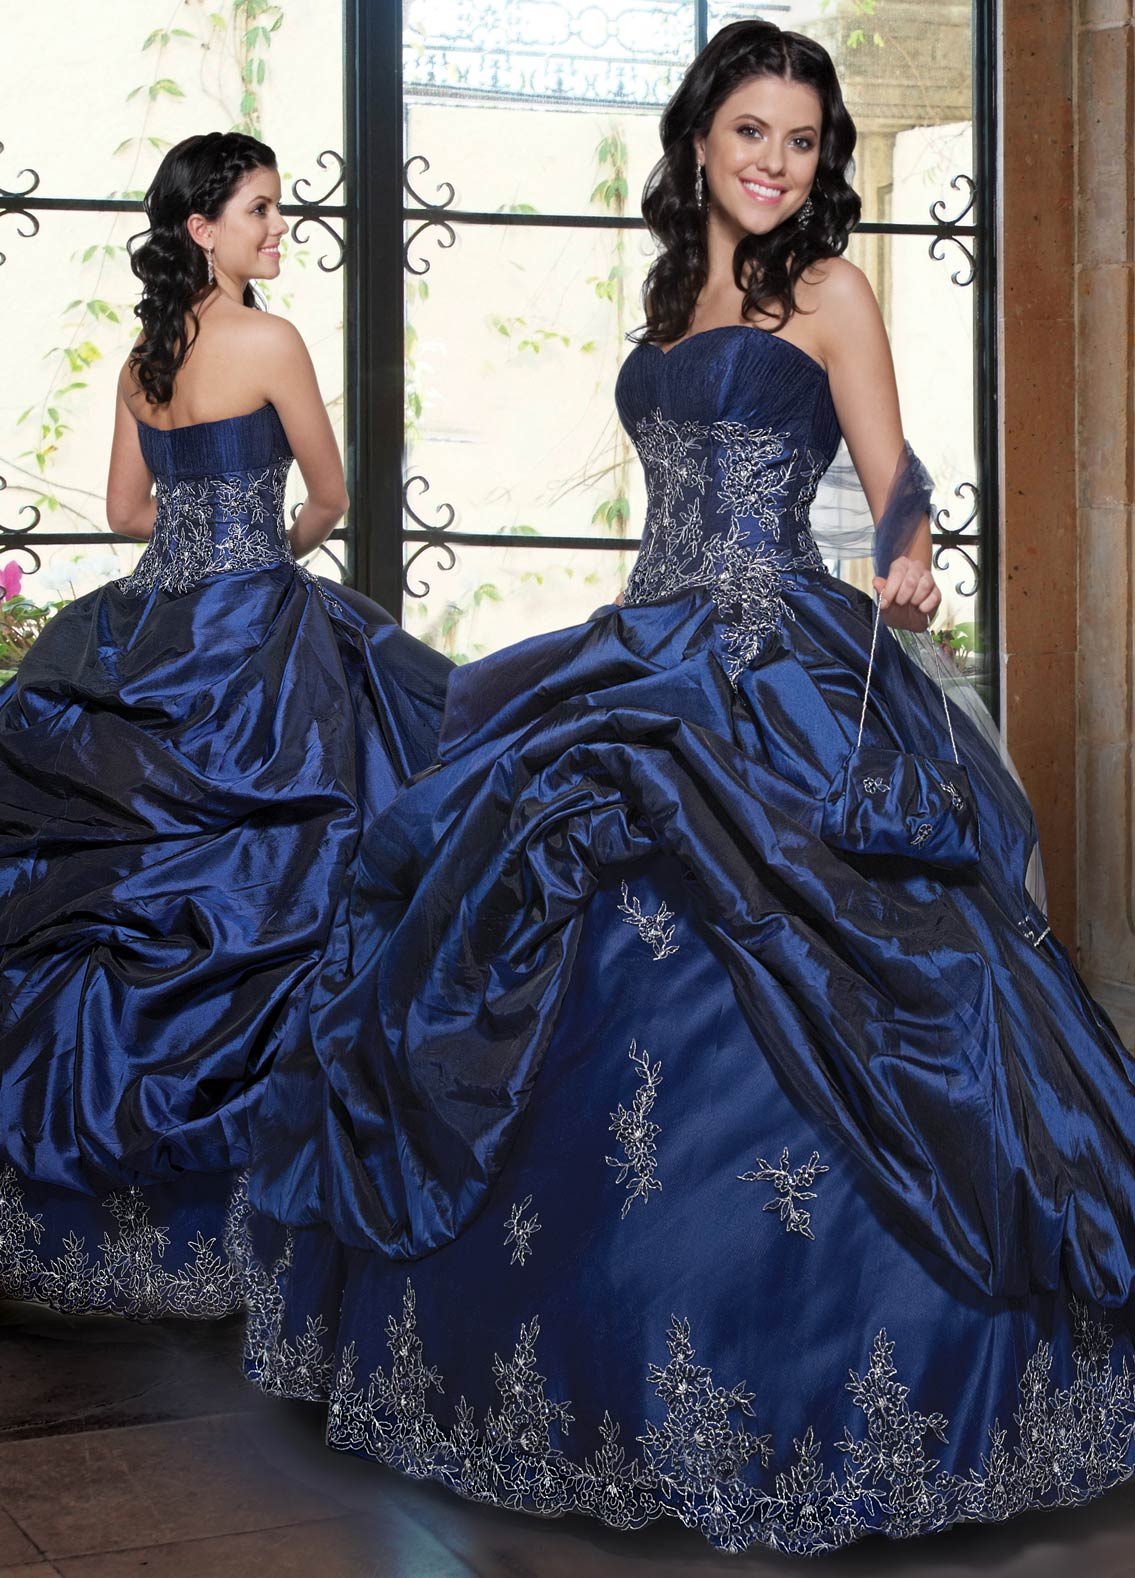 b567cfe1c72 Sweetheart and Strapless Zipper Floor Length Royal Blue Ball Gown  Quinceanera Dresses With Beading Appliques and Ruffles